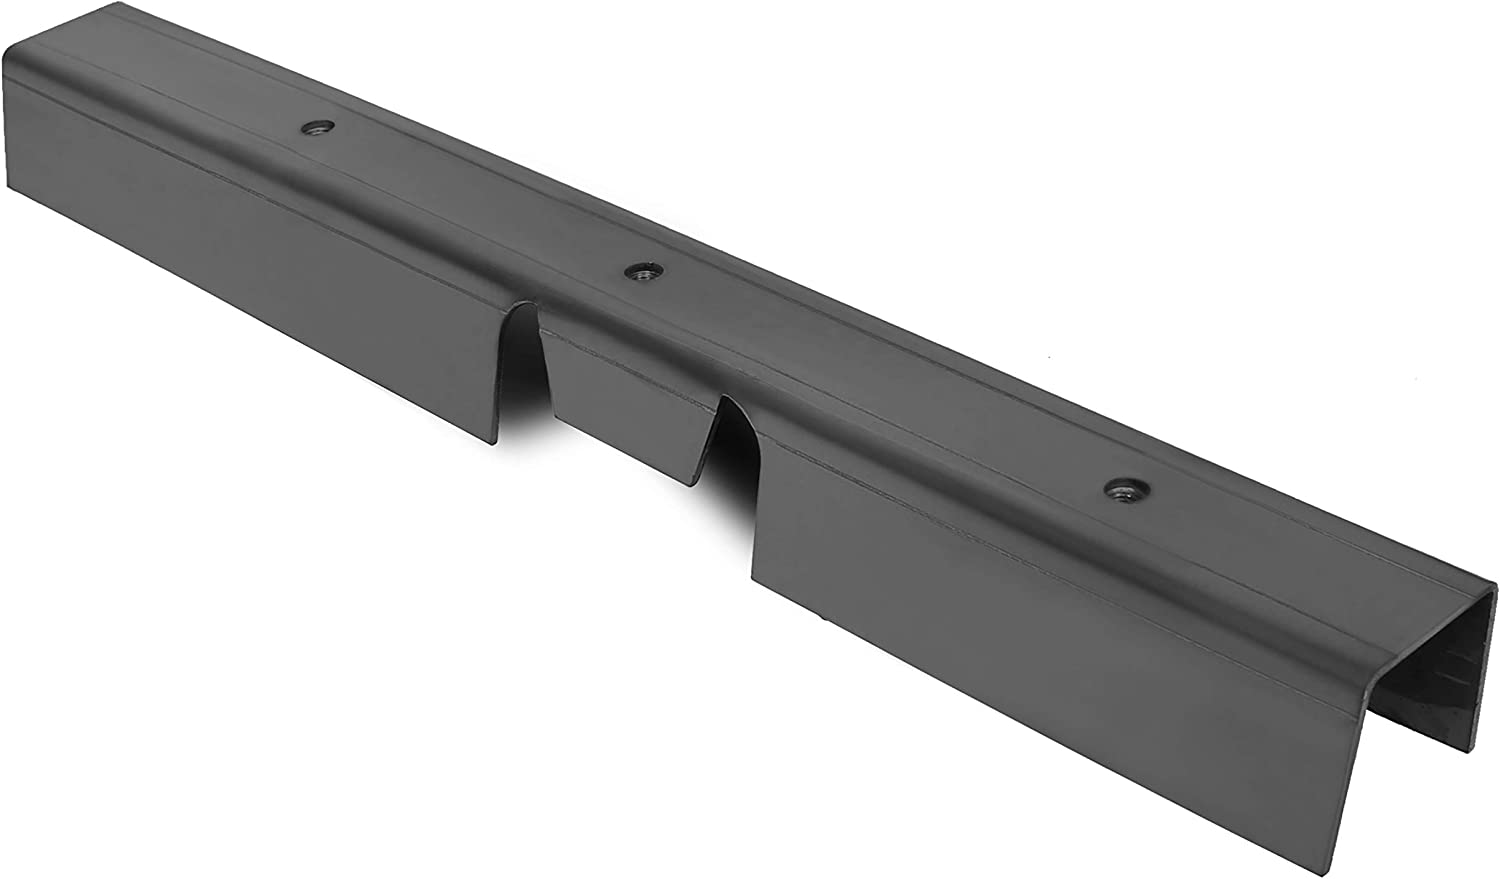 Center Skid Plates Repair Sections Frame RH LH for Jeep Wrangler YJ Driver and Passenger 1987-1995